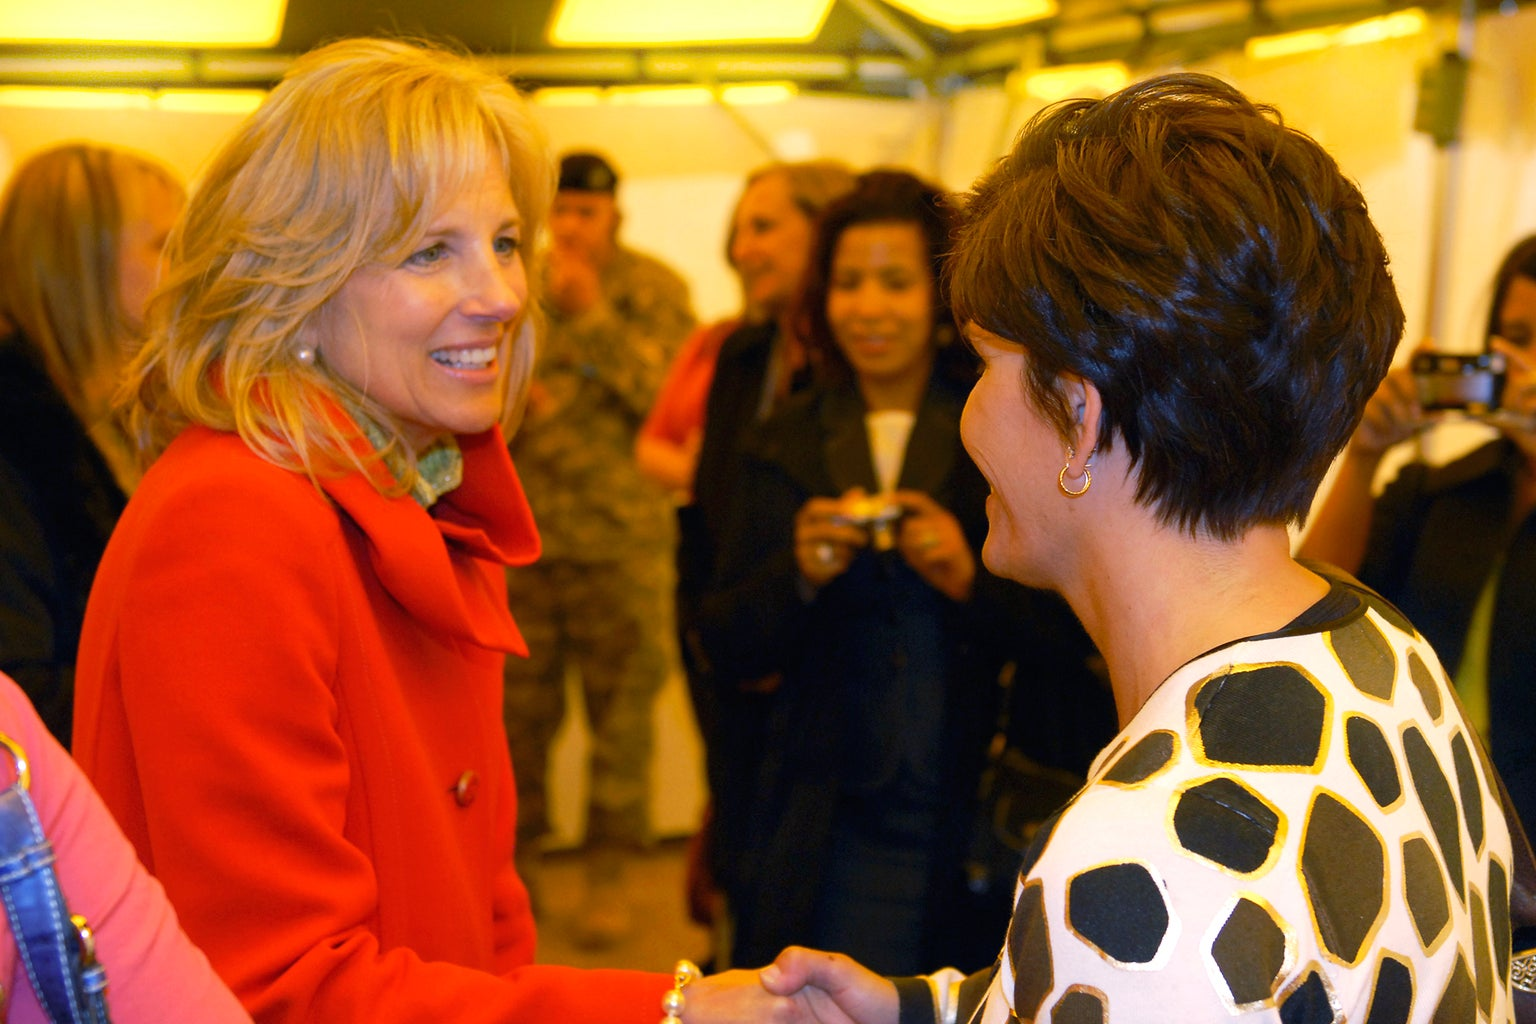 Dr. Jill Biden in a red coat, speaking to another woman.